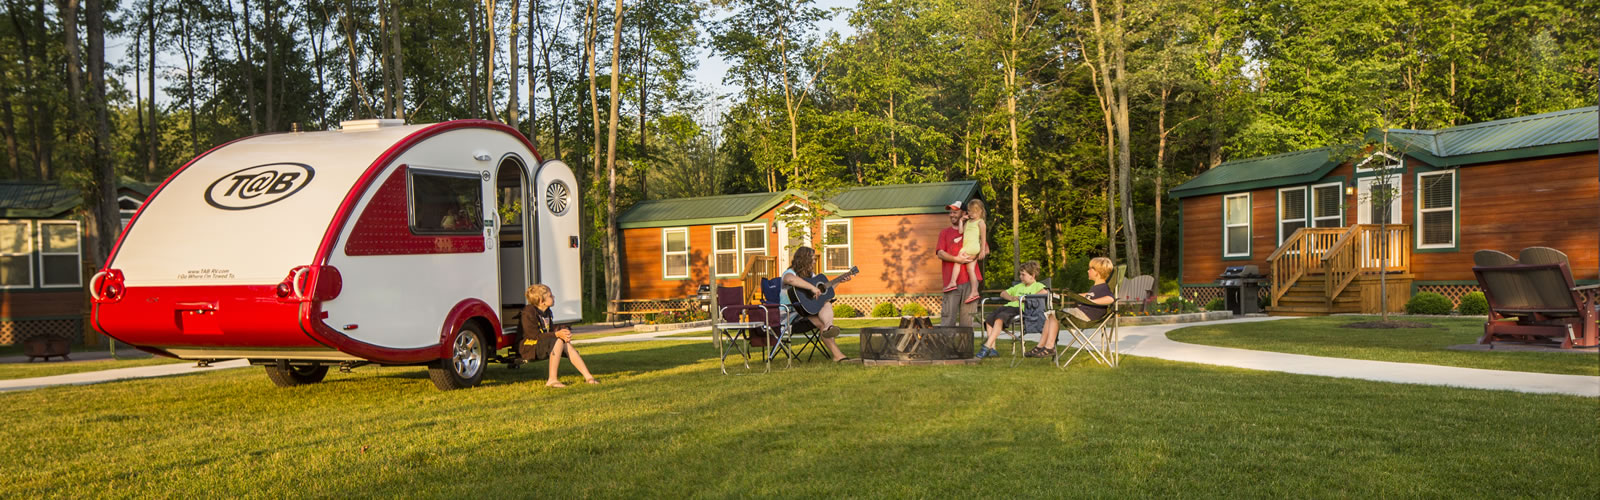 If you want even more comforts from home reserve Deluxe Cabins for your group. Most deluxe cabins feature kitchenettes along with gas grills and fire pits